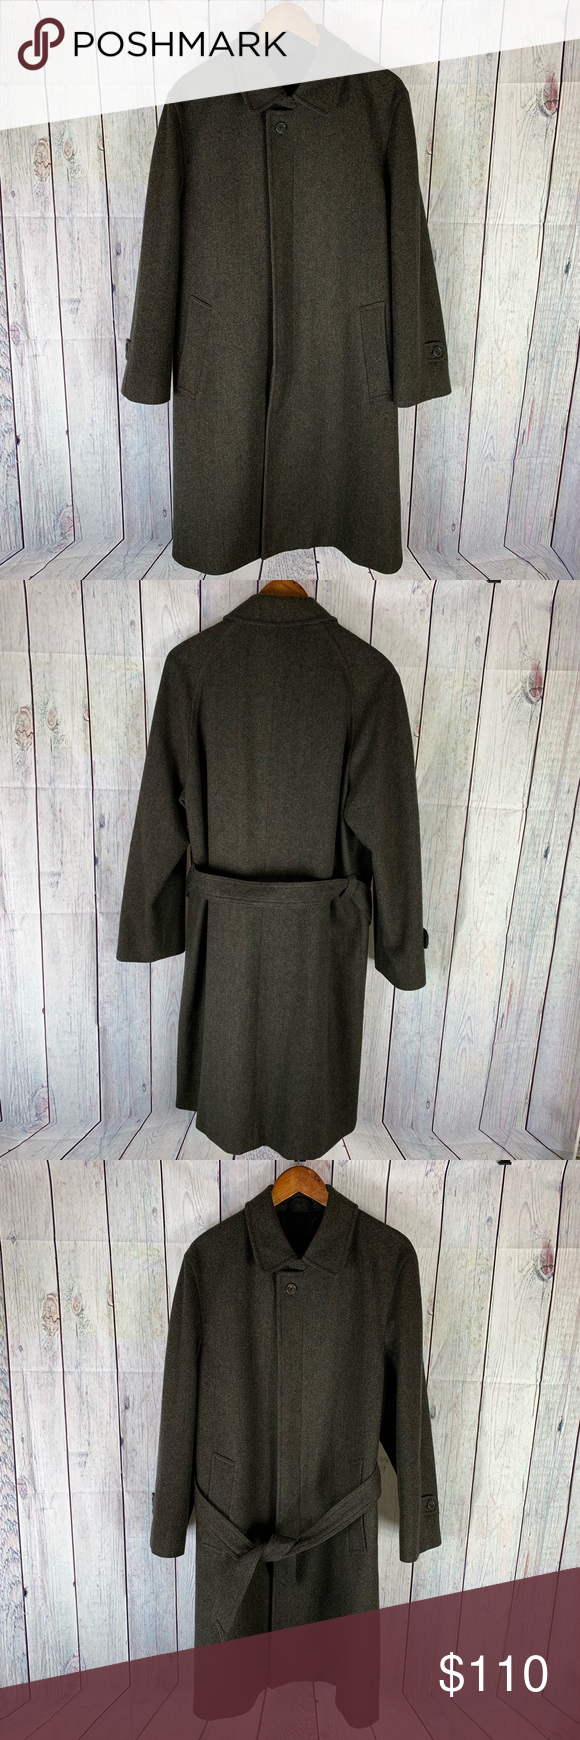 Austin Reed Men S Pure Wool Trench Coat Austin Reed Men S Pure Wool Trench Coat Size 38r Color Brown See Photo Wool Trench Coat Clothes Design Trench Coat